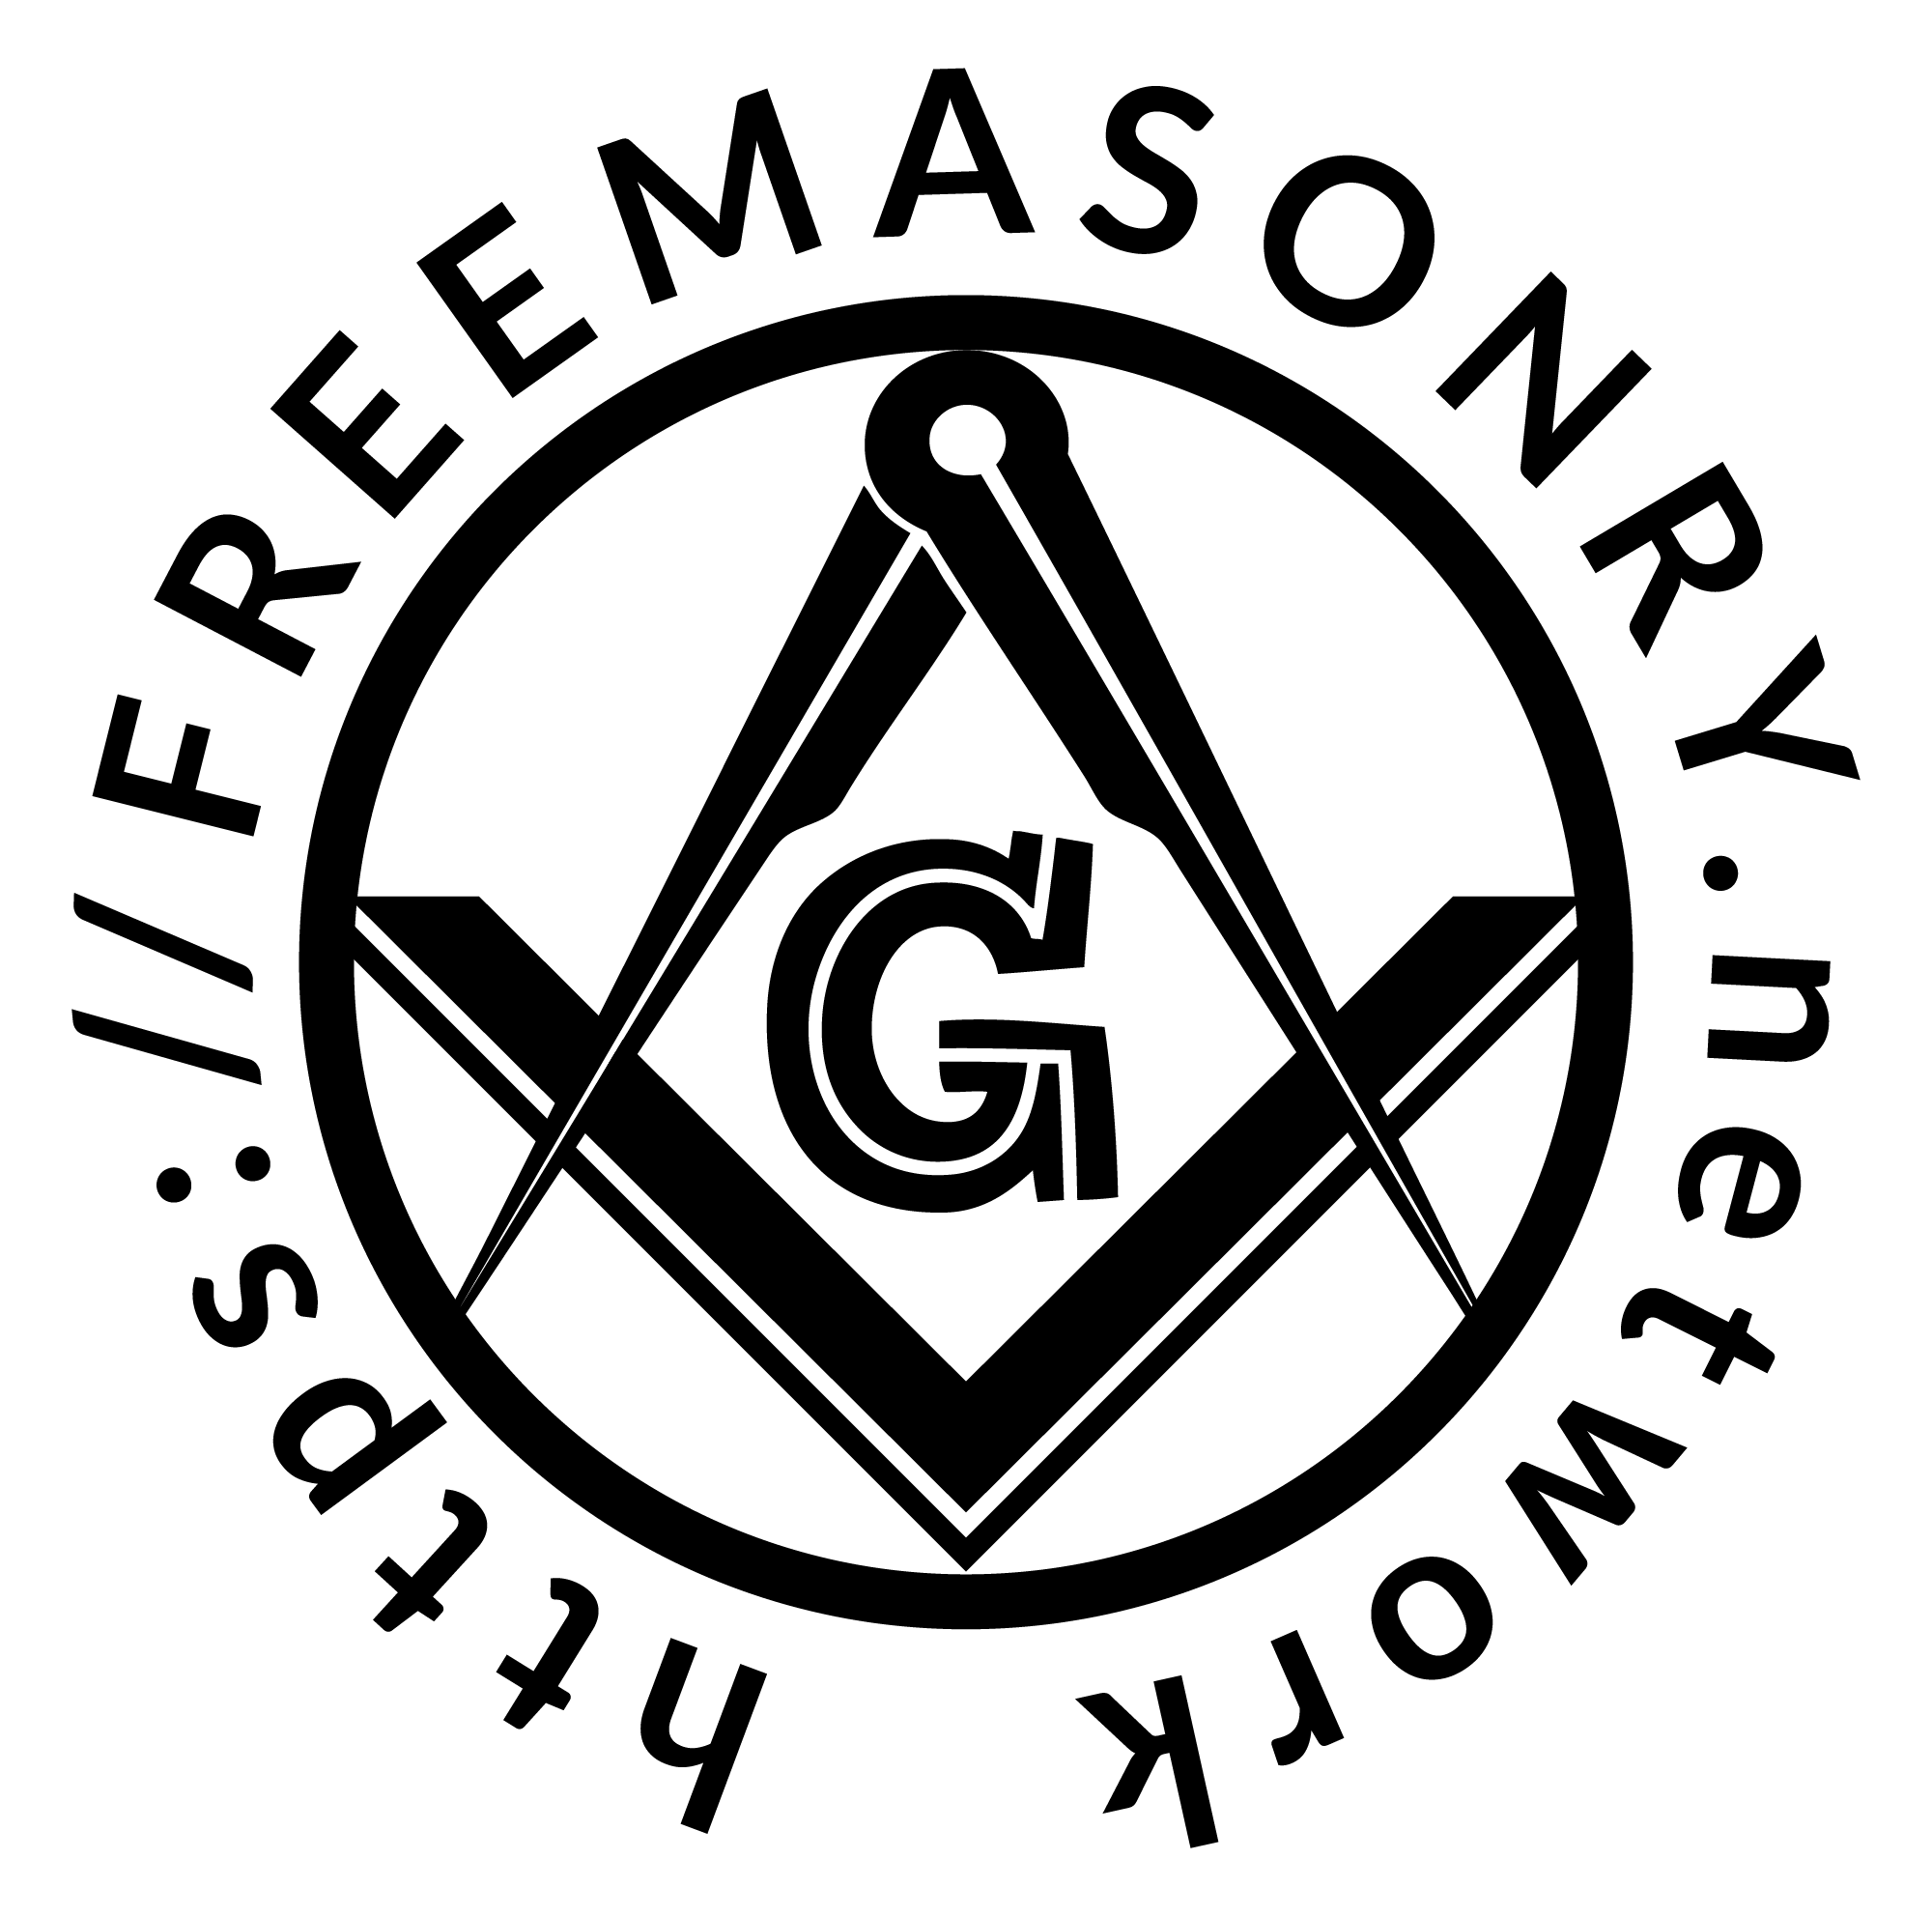 The Masonic Lesson of Subduing One's Passions